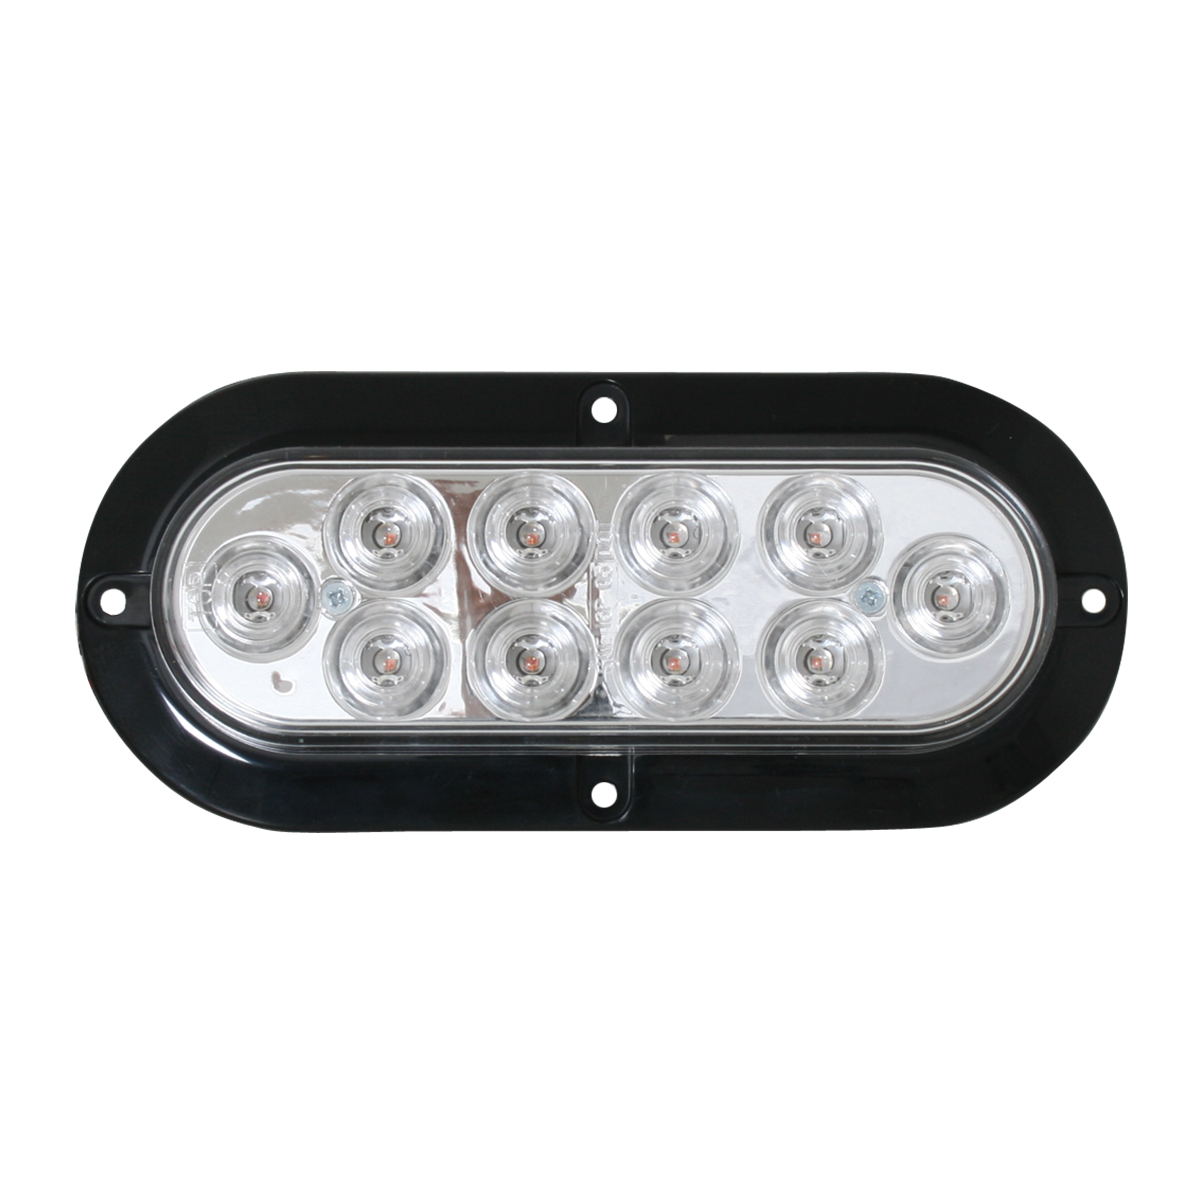 76873 Surface Mount Oval Mega 10 Plus LED Light